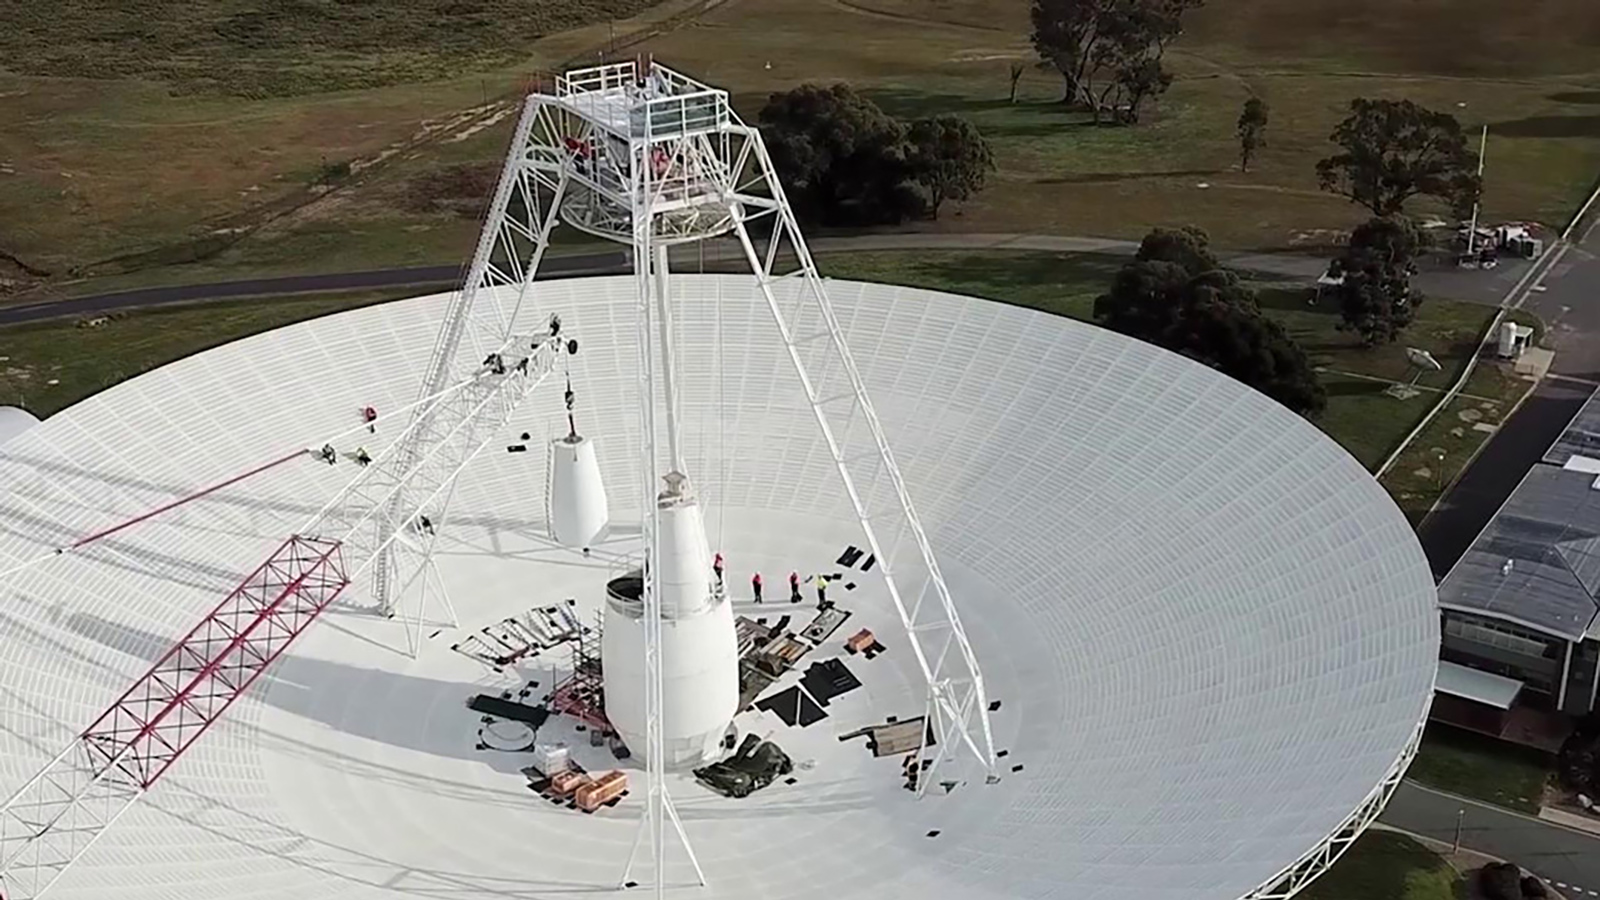 slide 1 - Workers fixing antenna in Canberra